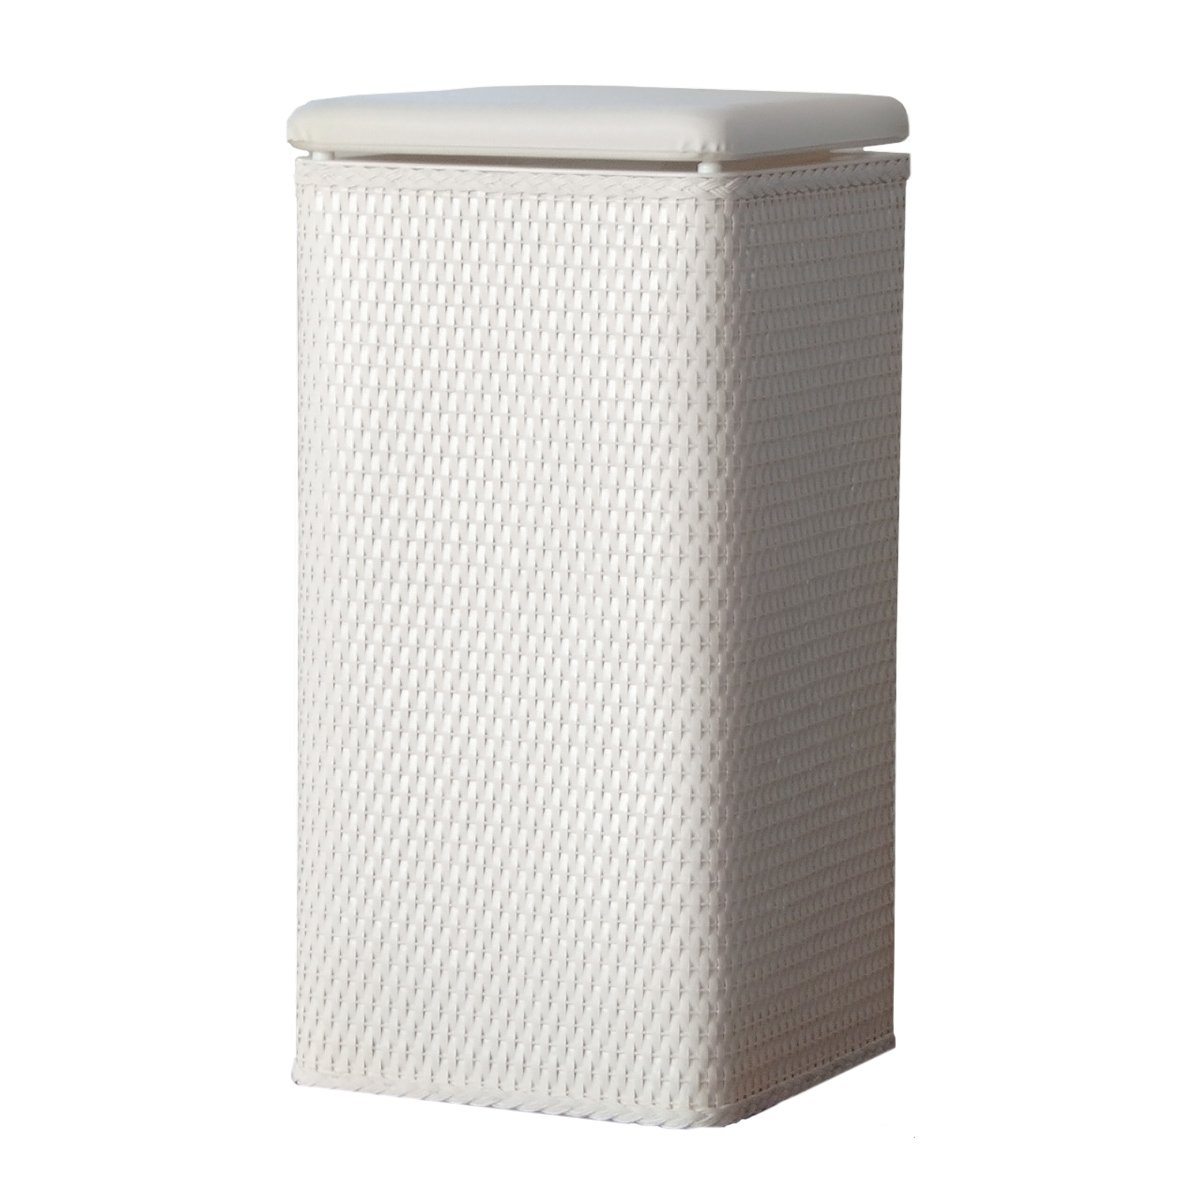 White Laundry Hamper With Lid Lamont Home Carter Apartment Wicker Laundry Hamper With